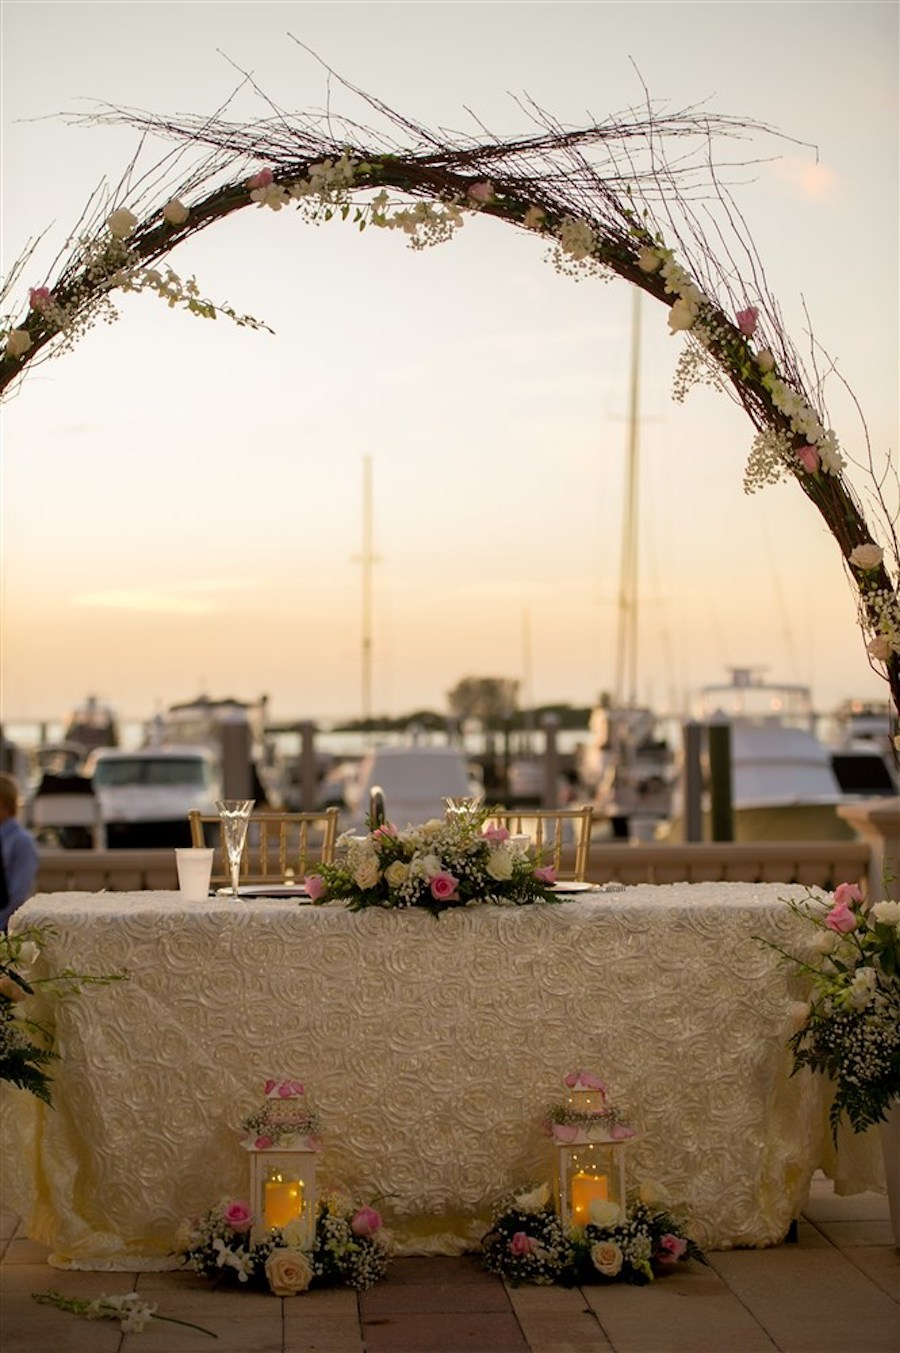 Waterfront Wedding Reception Decor with Sweetheart Table Natural Branch Arch with Baby's Breath and White and Pink Roses and Greenery with Lanterns   Tampa Bay Wedding Venue Westshore Yacht Club